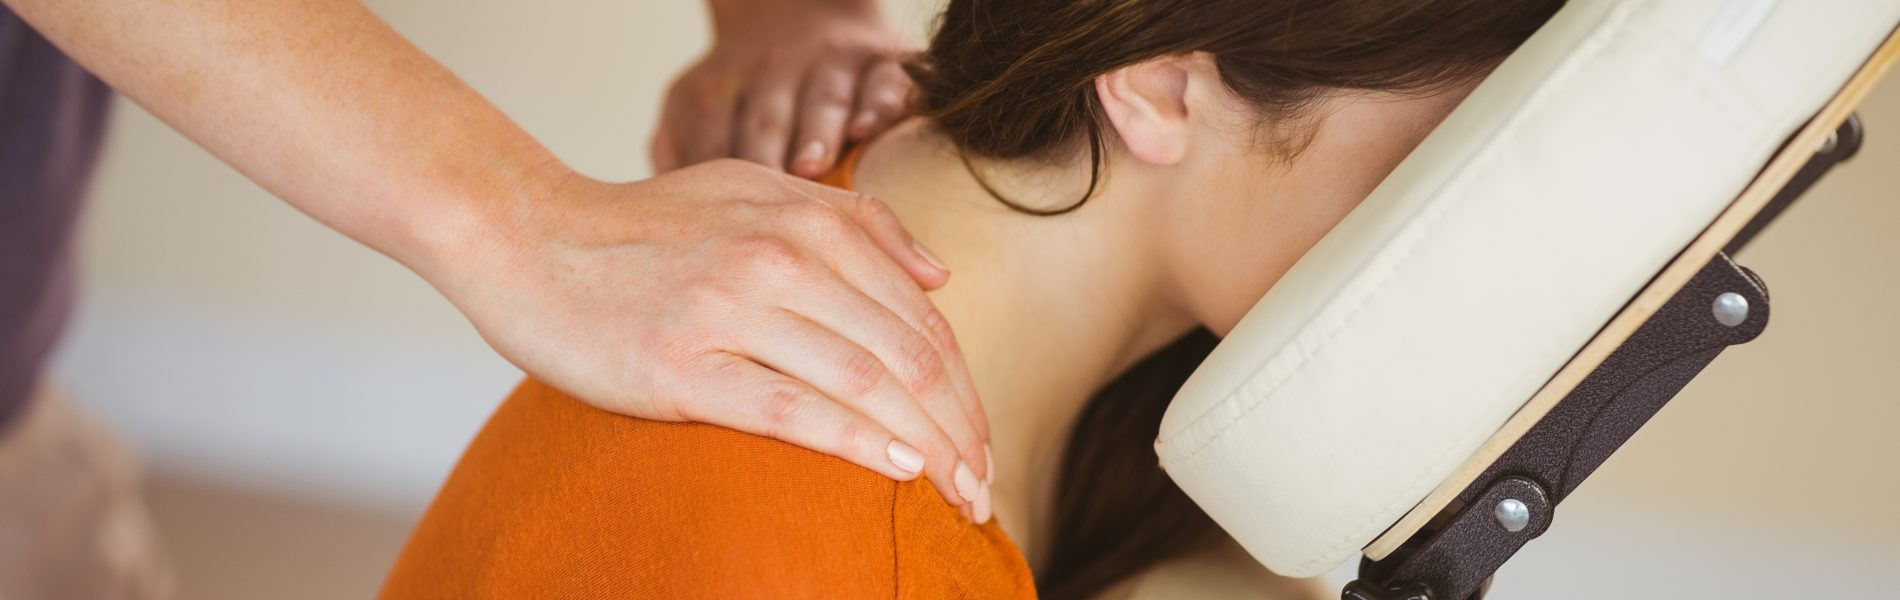 Stoelmassage op locatie | Chair massage corporate and event also English spoken Maureen Kessing 070 73 70 261